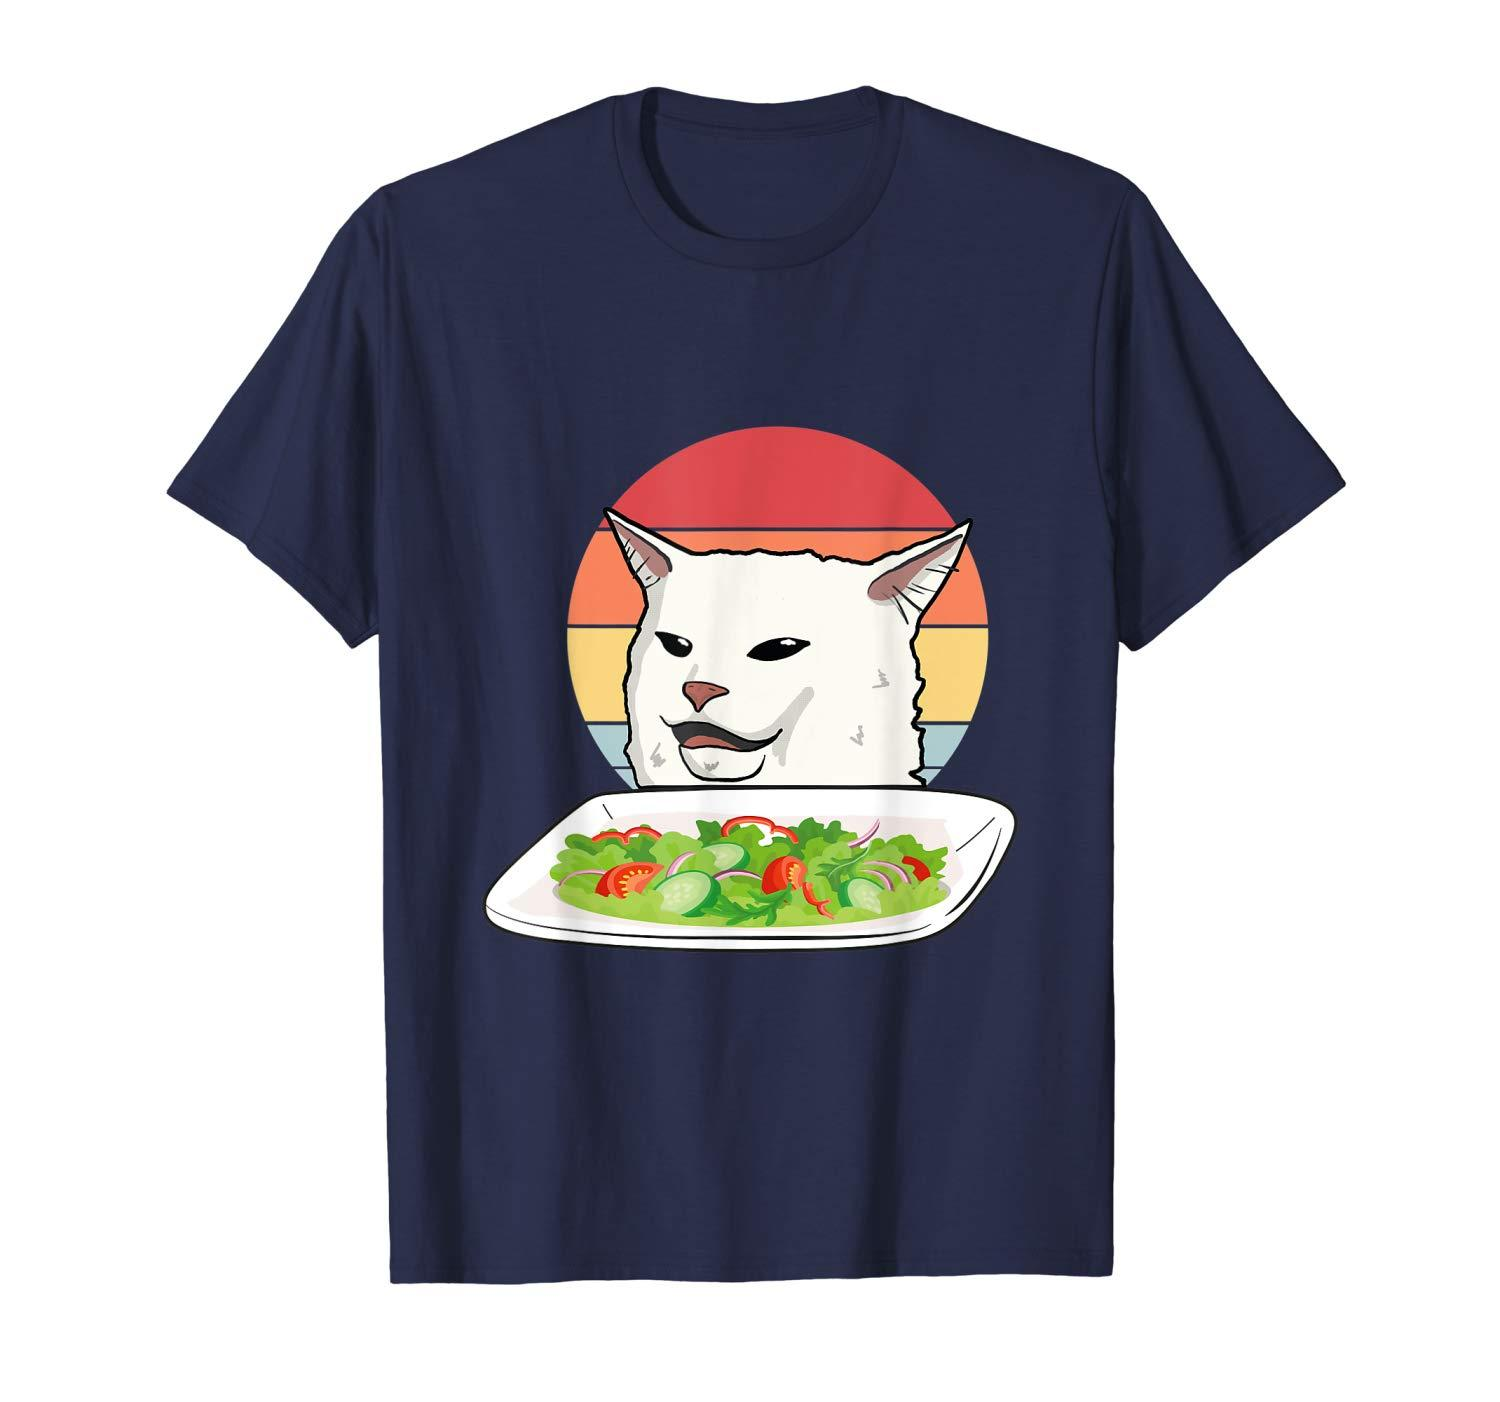 https://www.dhresource.com/0x0s/f2-albu-g10-M00-4F-A3-rBVaWV3EH7SAPqmPAAFP41kH9mA153.jpg/angry-women-yelling-at-confused-cat-at-dinner.jpg